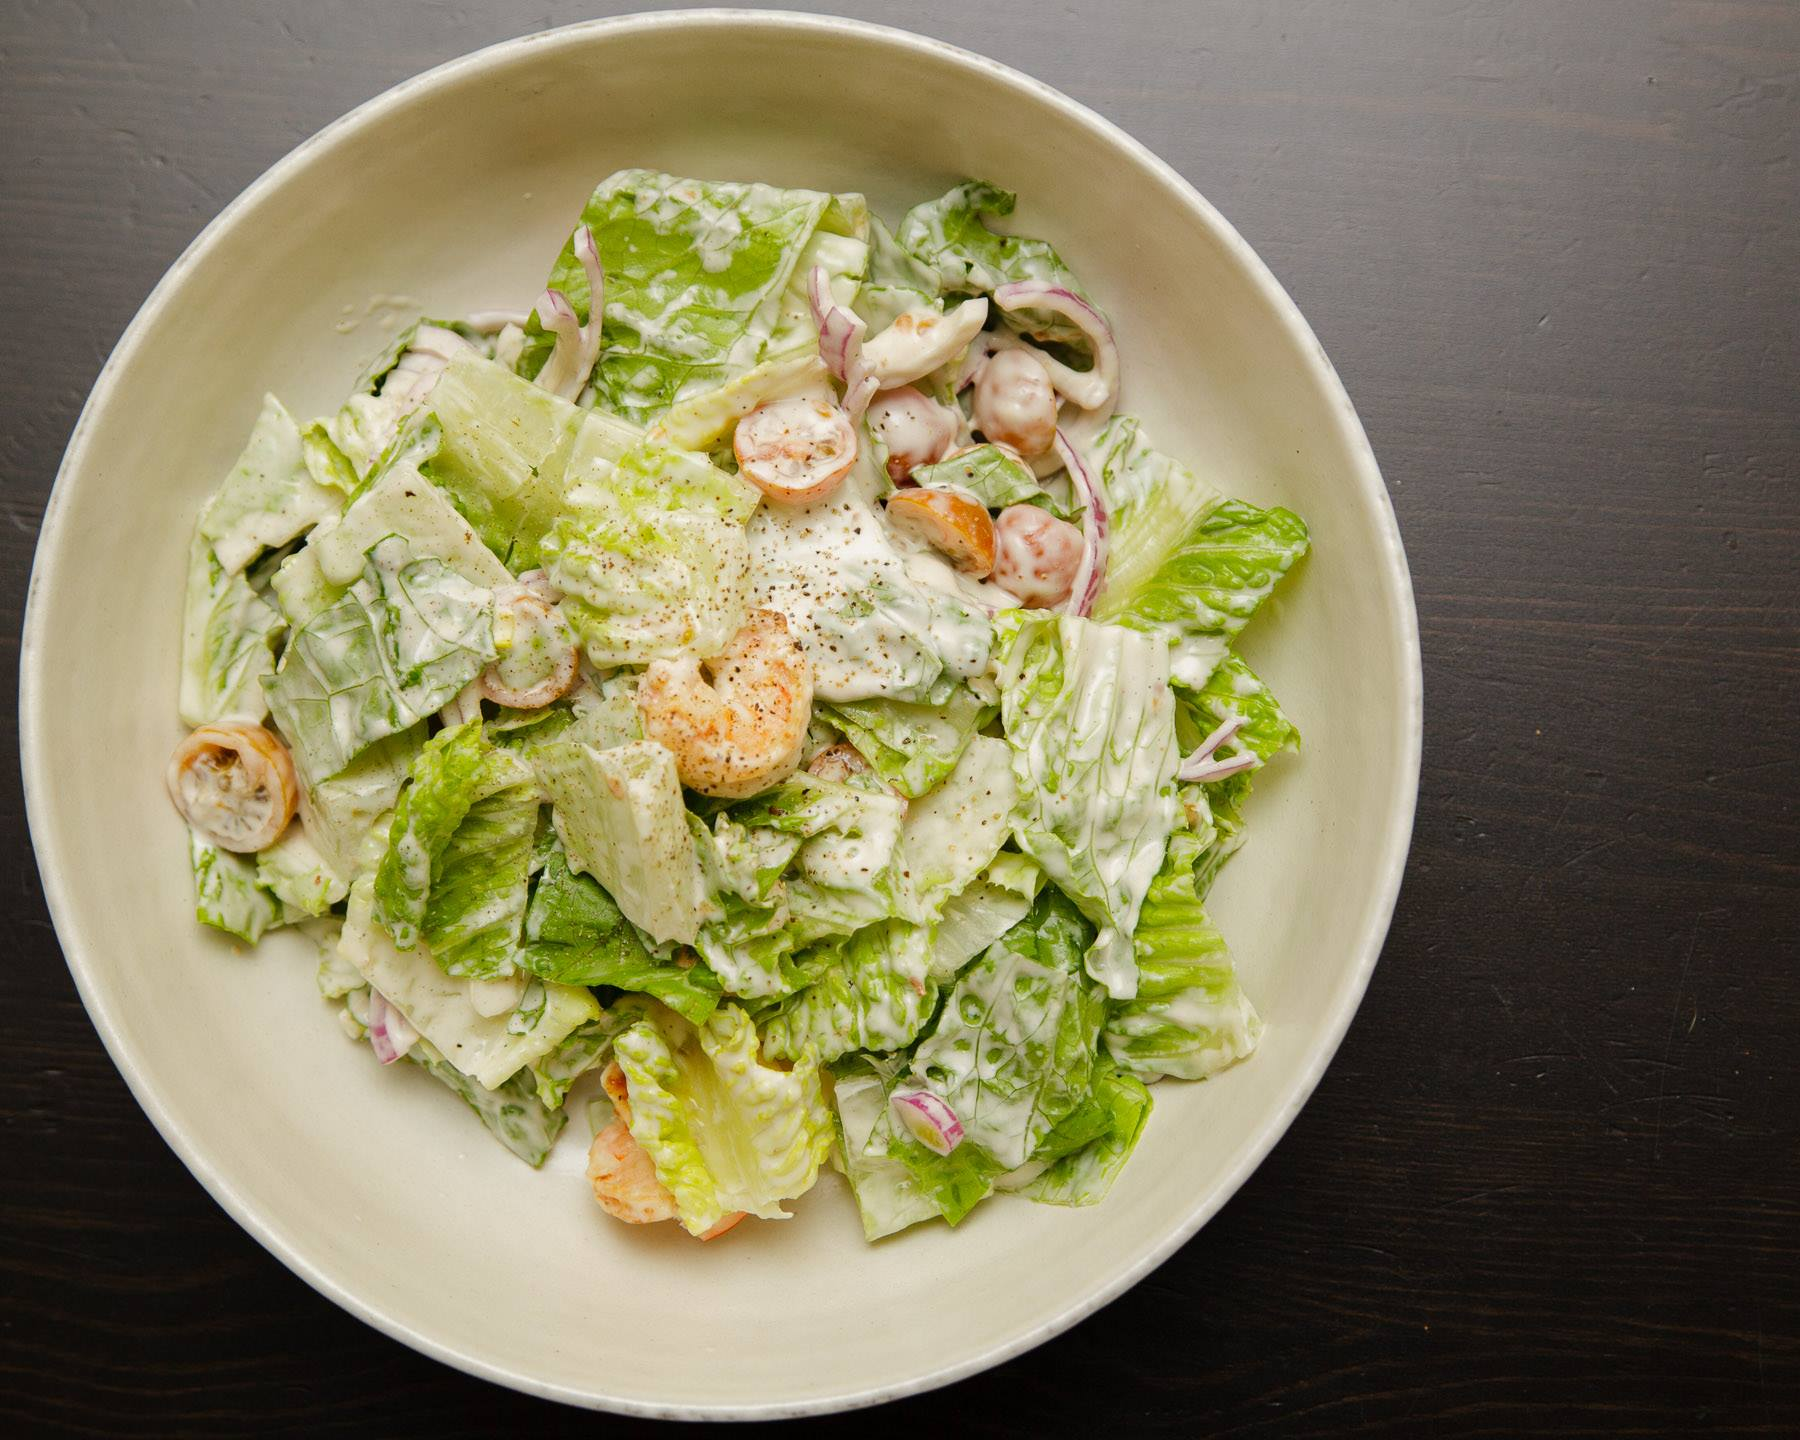 Crispy Romaine & Grilled Shrimp Salad With Tahini Dressing